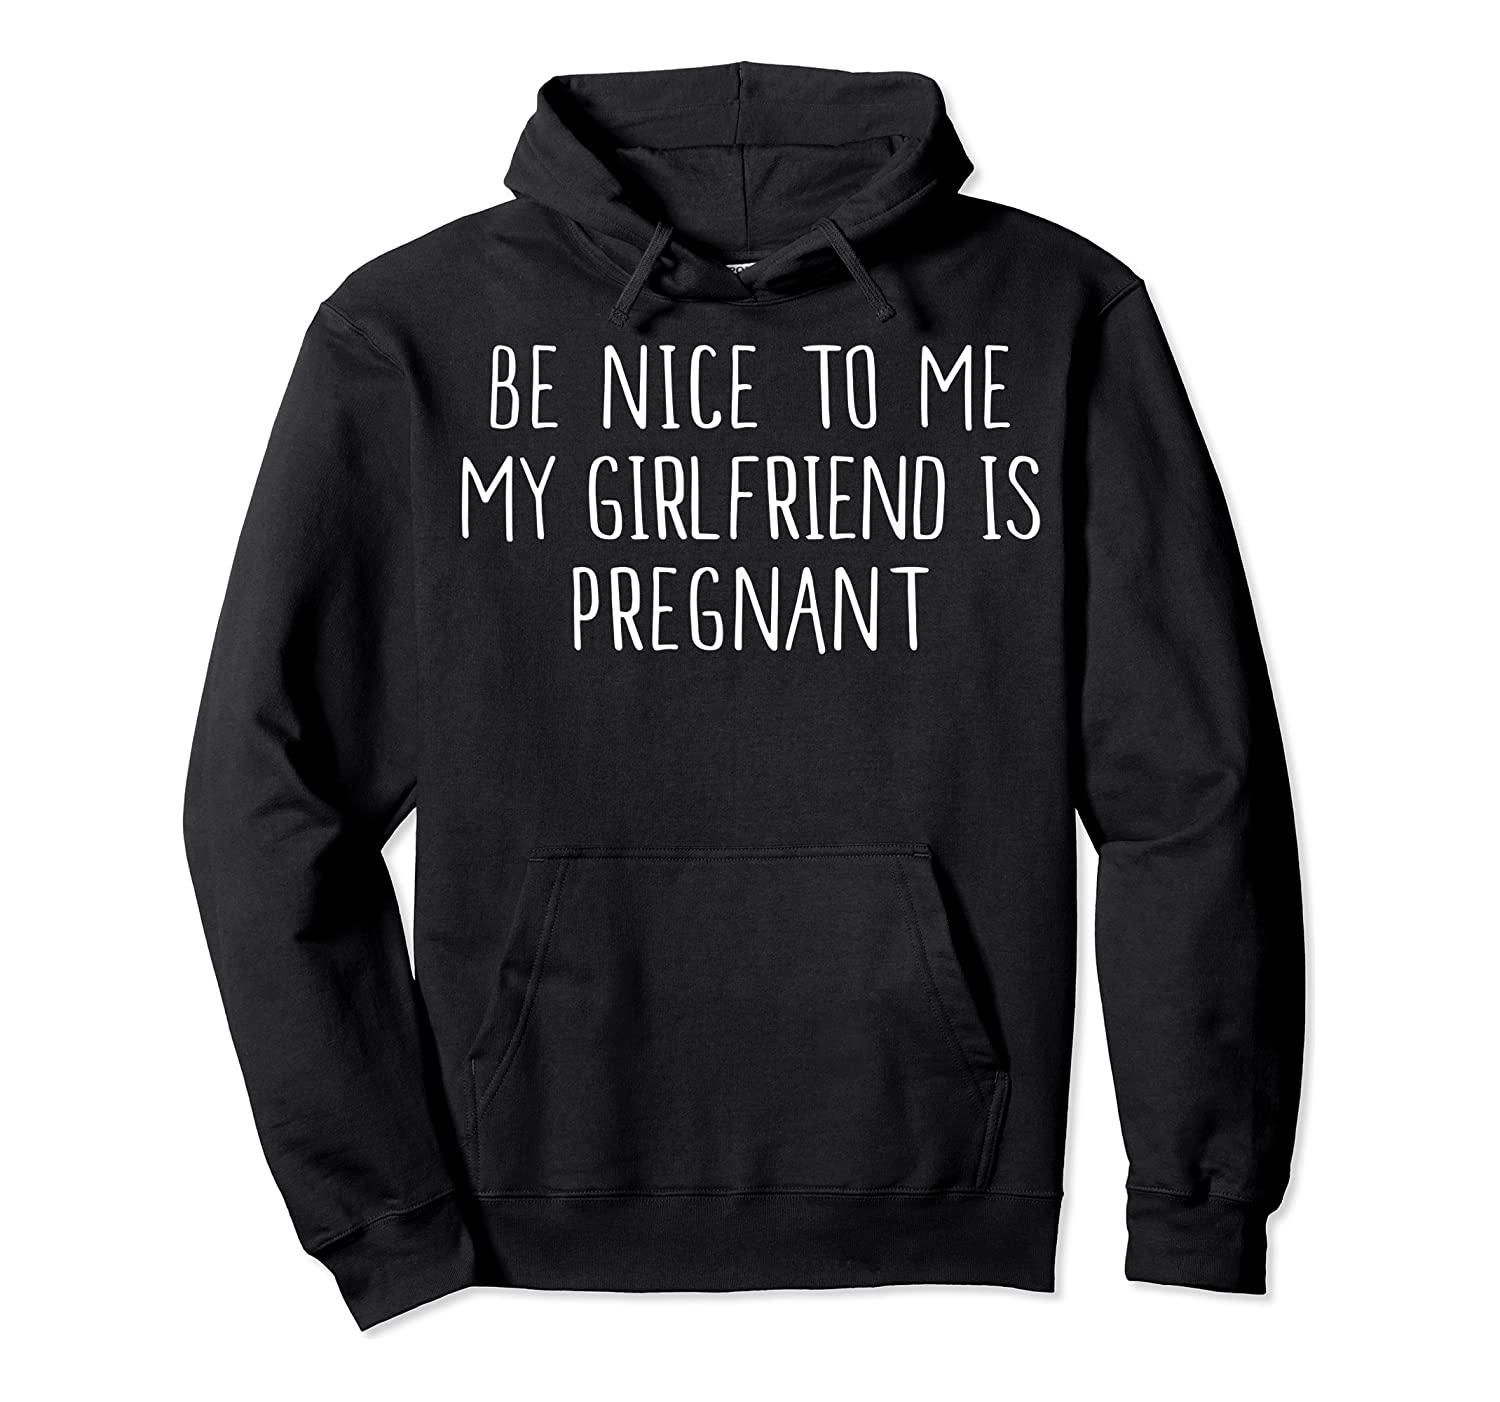 Funny Be Nice To Me My Girlfriend Is Pregnan Shirts Unisex Pullover Hoodie